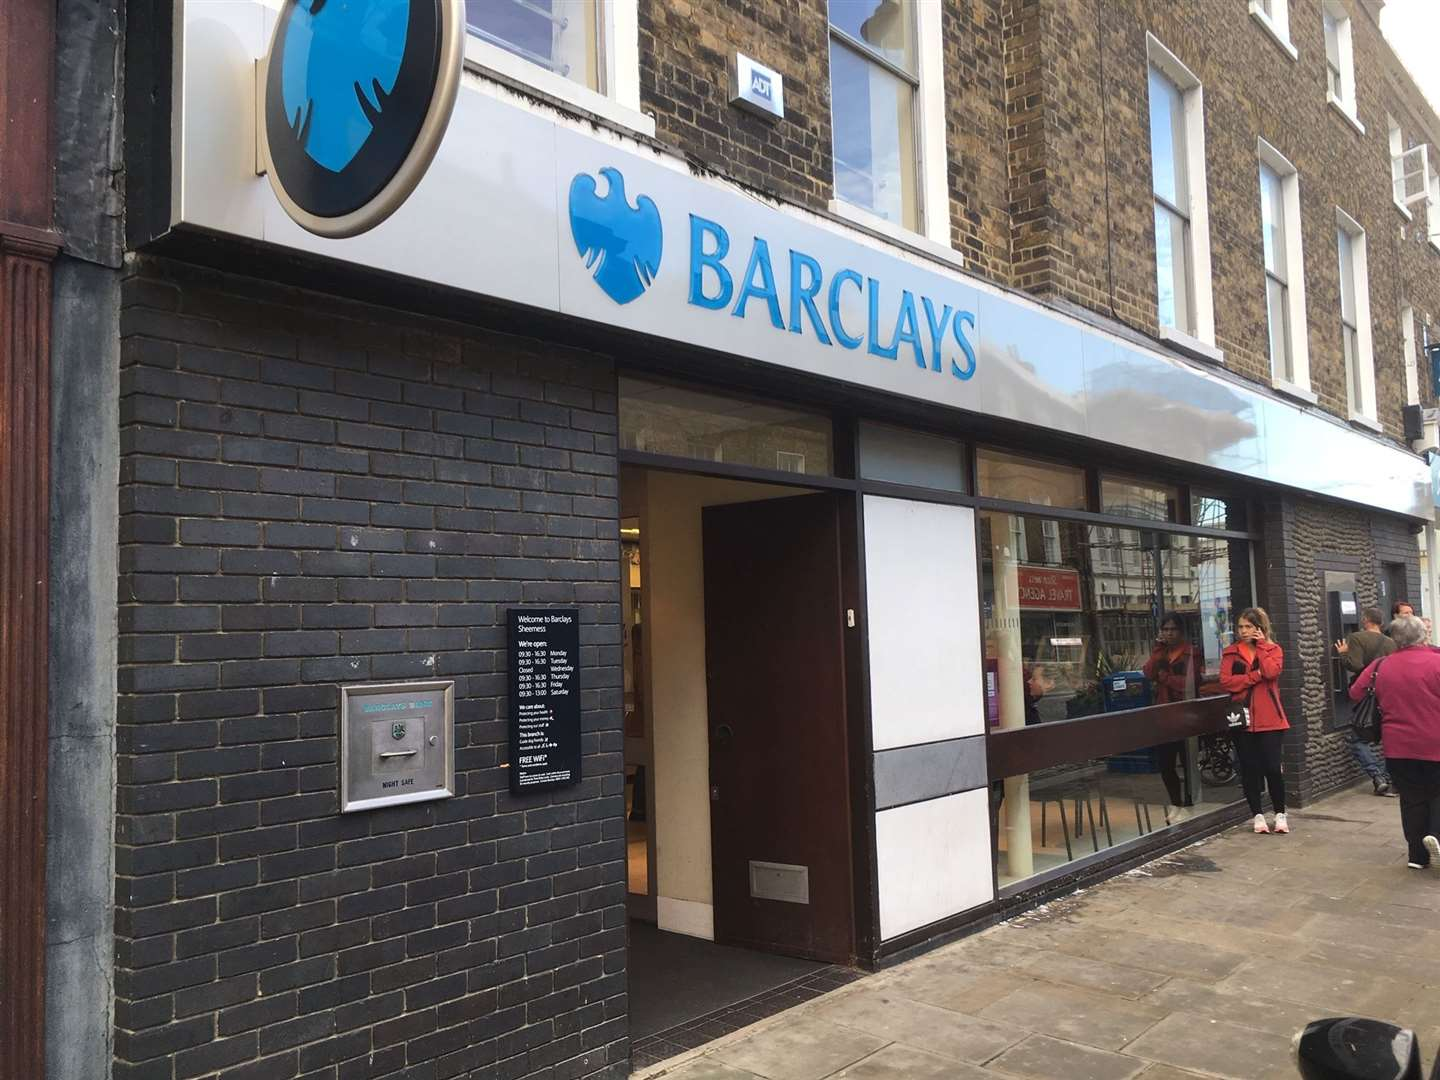 Barclays has come in for criticism for the move